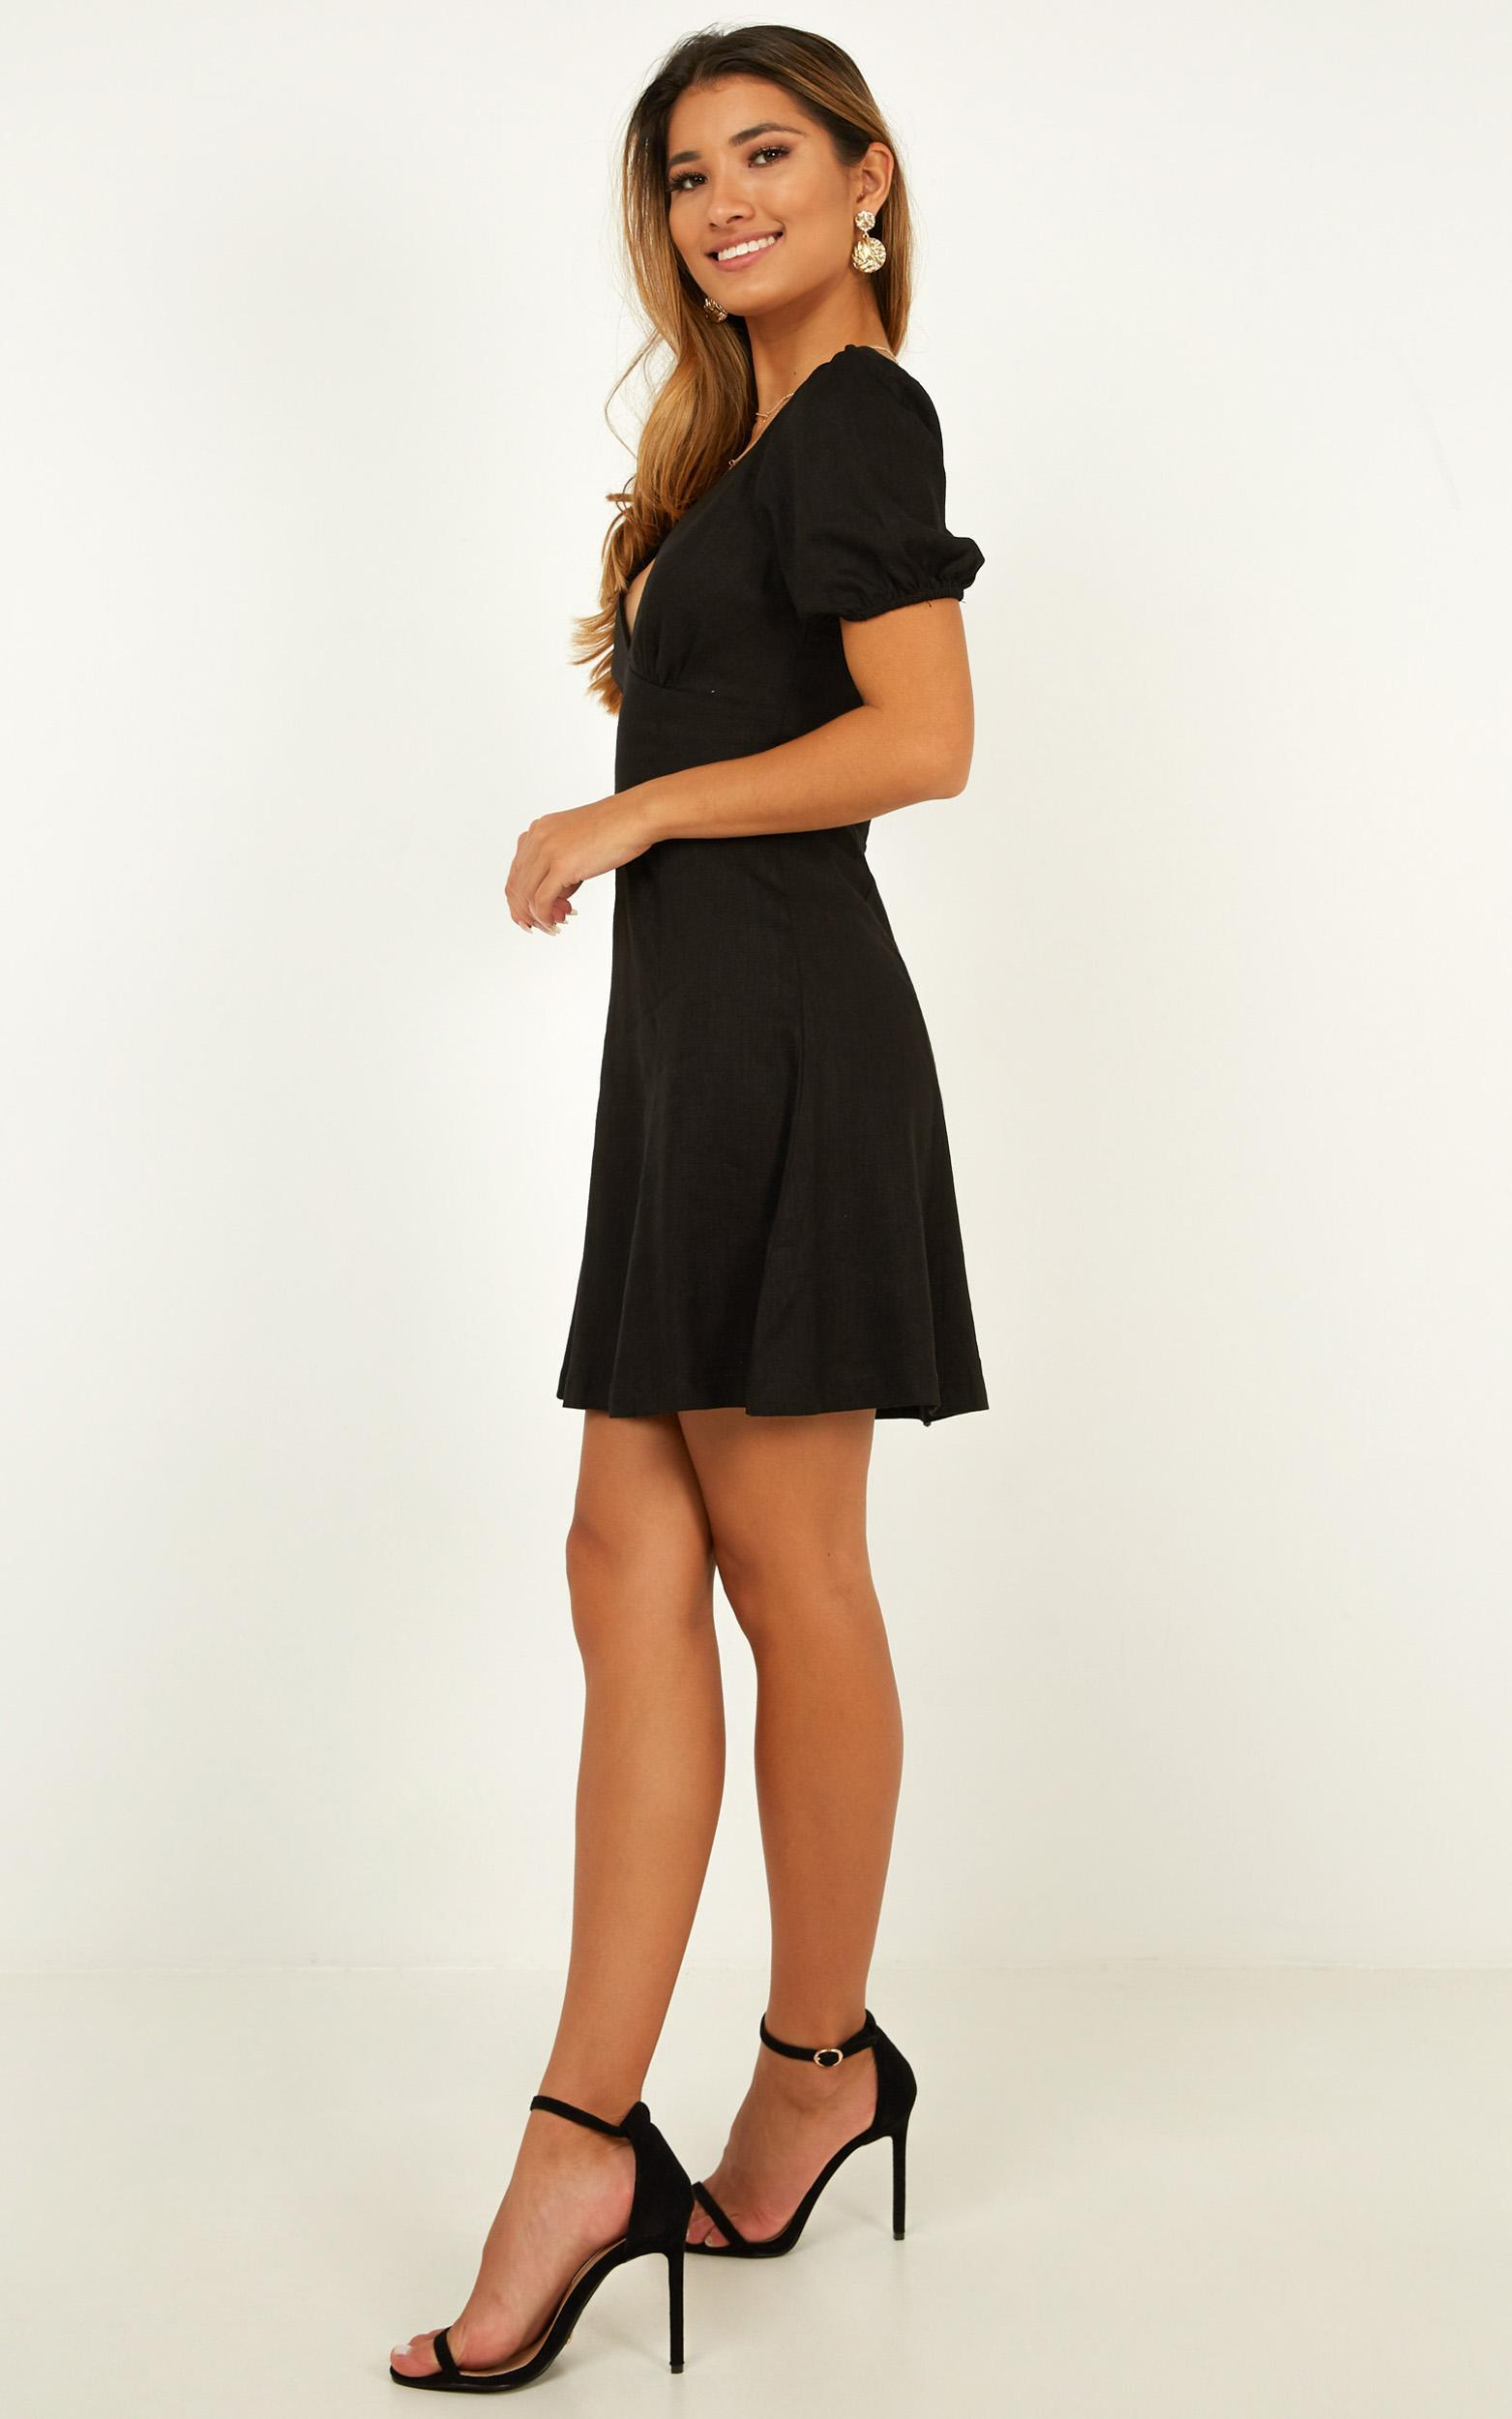 Waste No Time Dress In black - 12 (L), Black, hi-res image number null